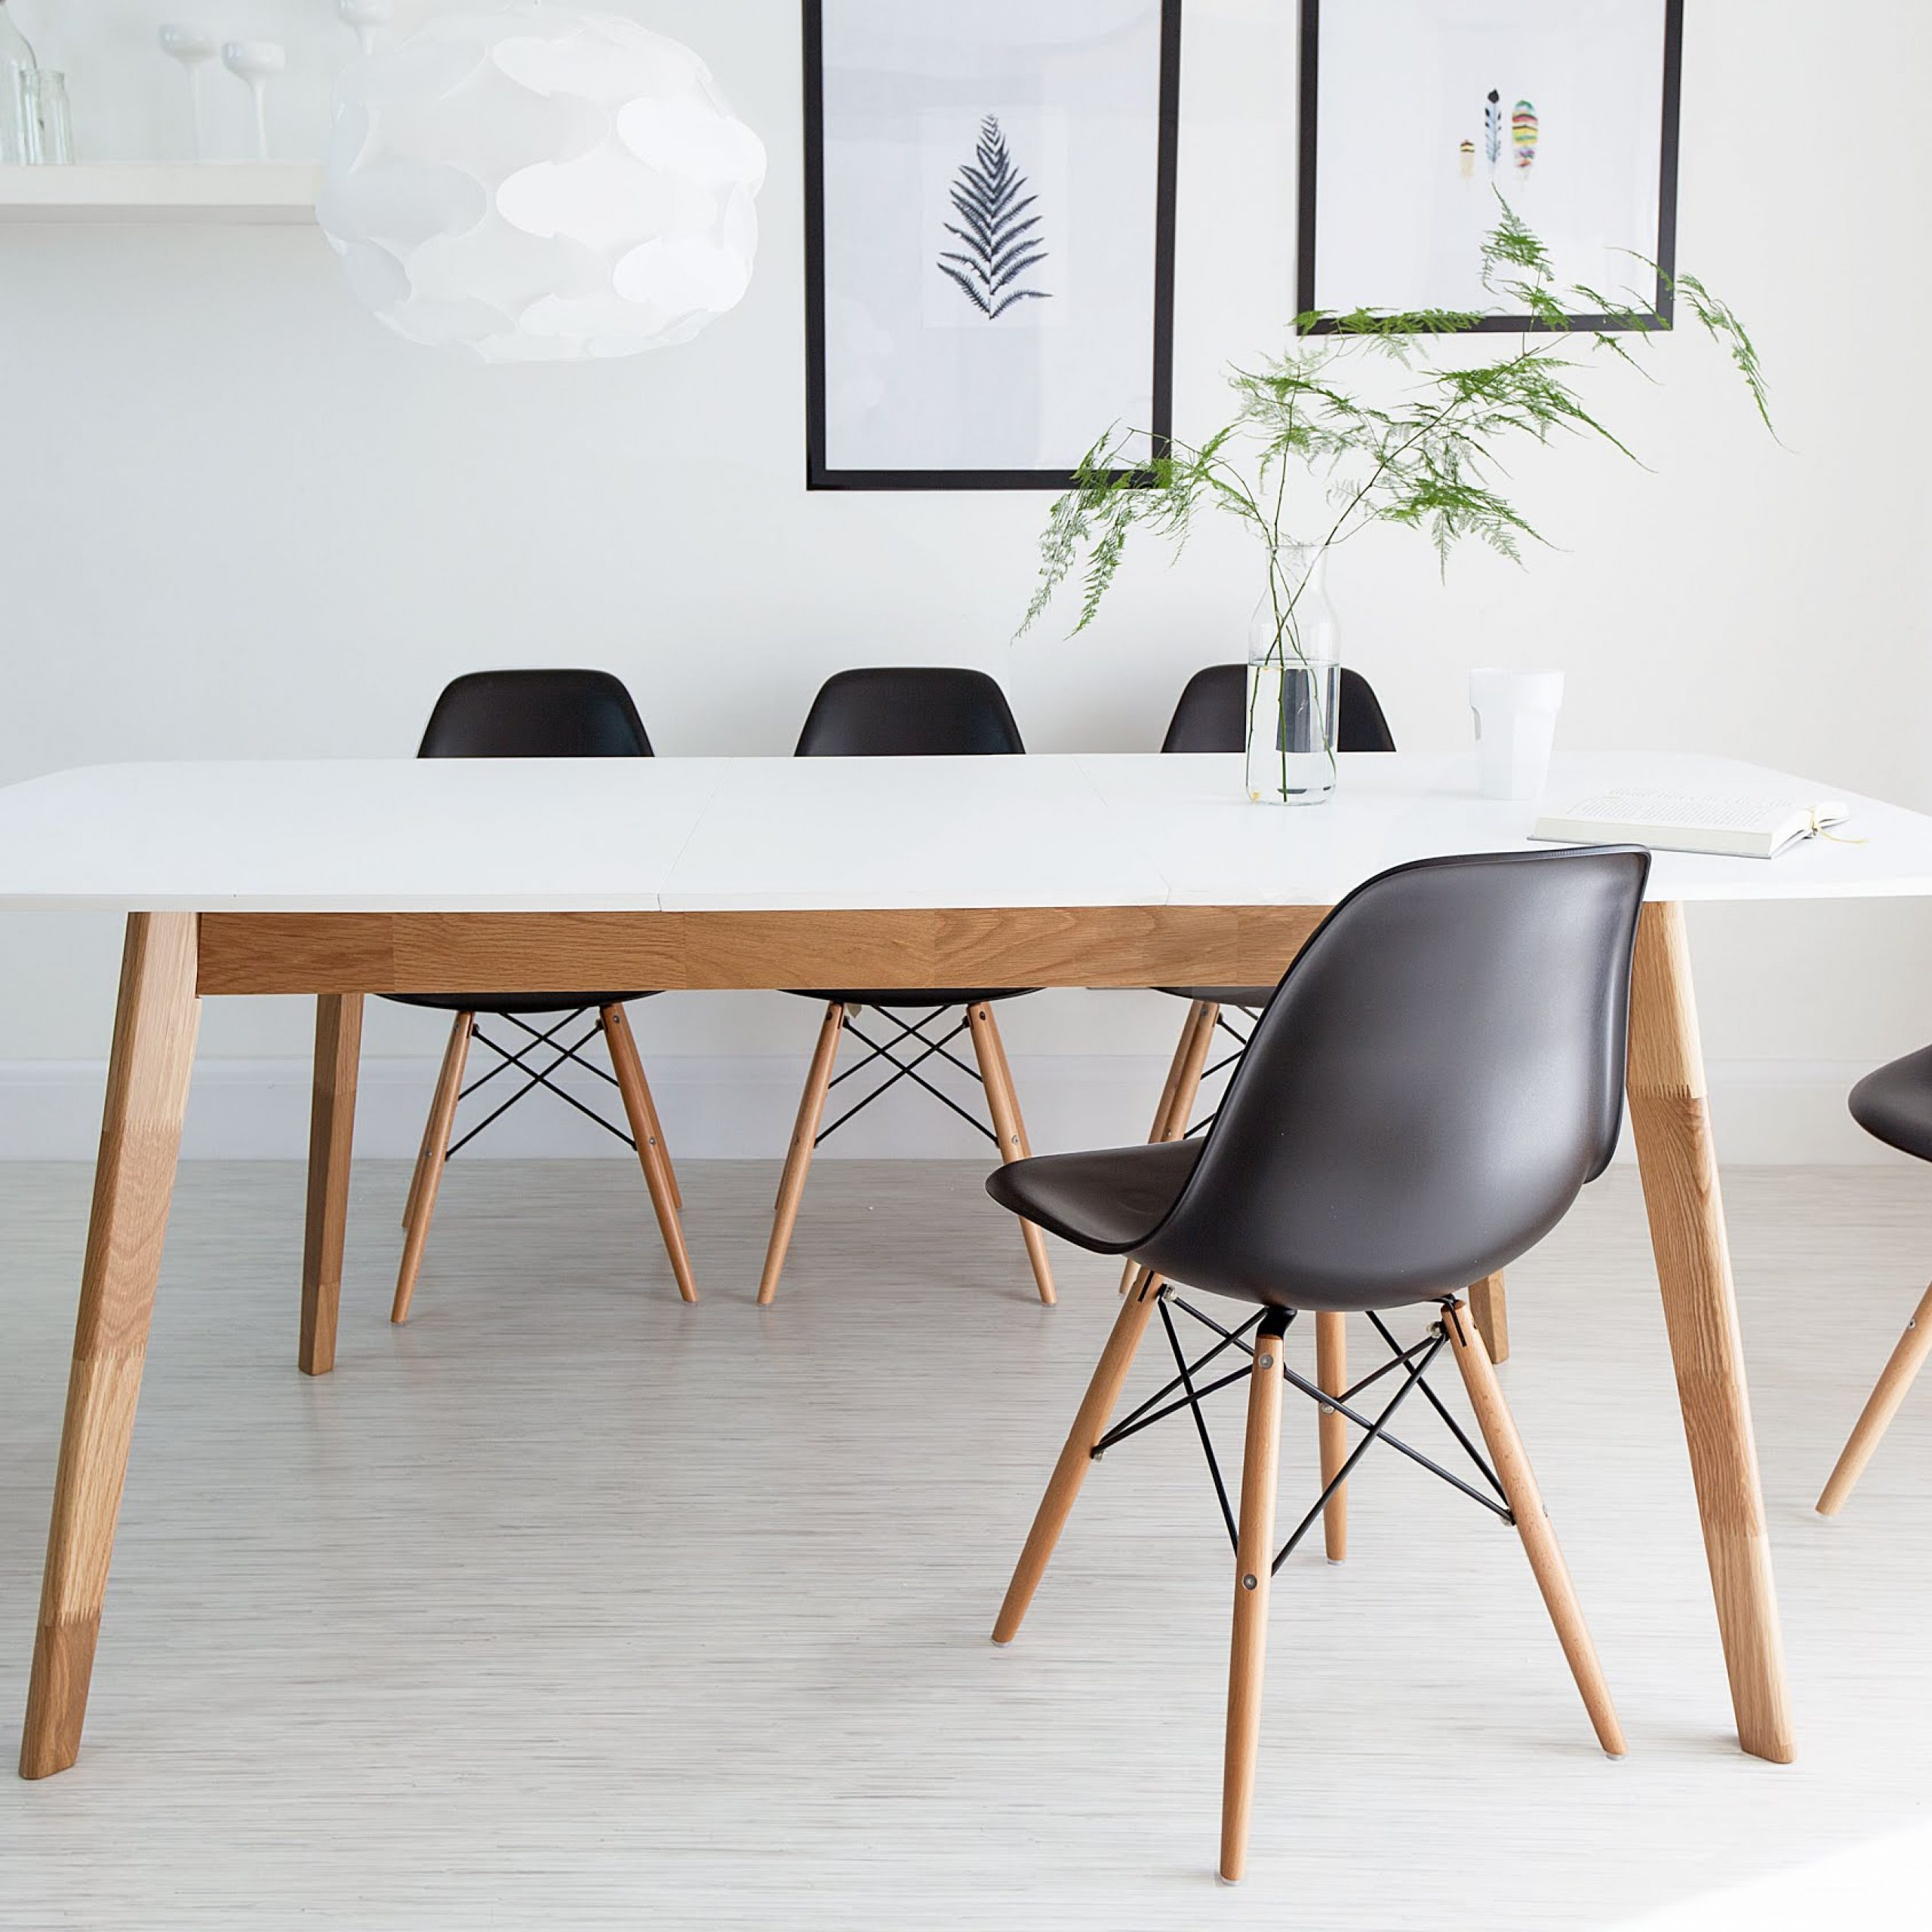 Well Known Elegant Eames Style Dining Table – Creative Design Ideas Intended For Eames Style Dining Tables With Wooden Legs (View 13 of 16)